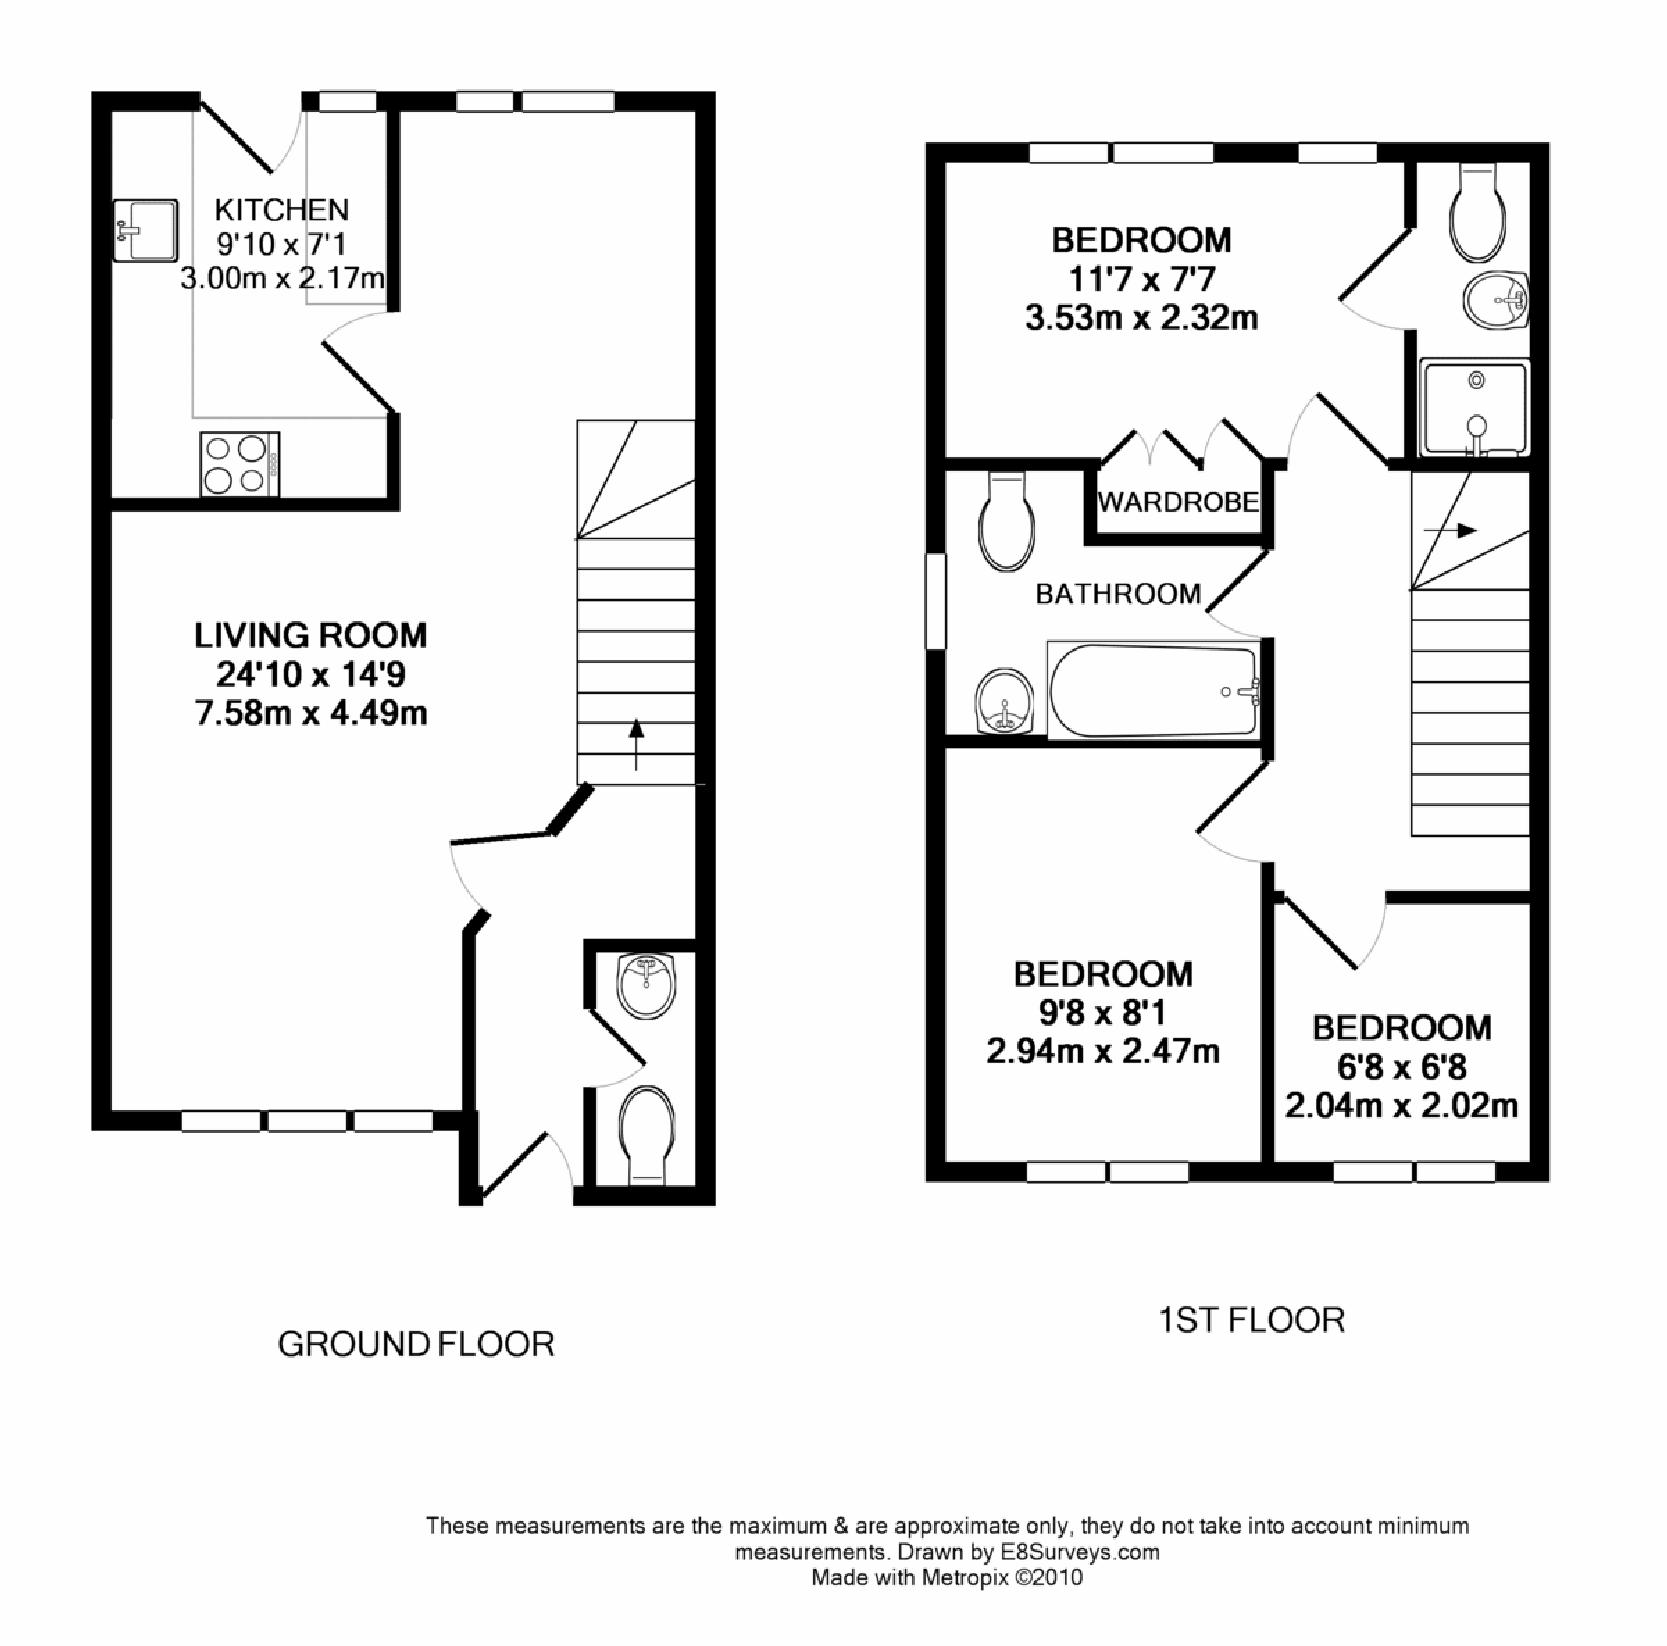 2 bedroom house floor plans uk thefloors co for 5 bedroom house plans uk